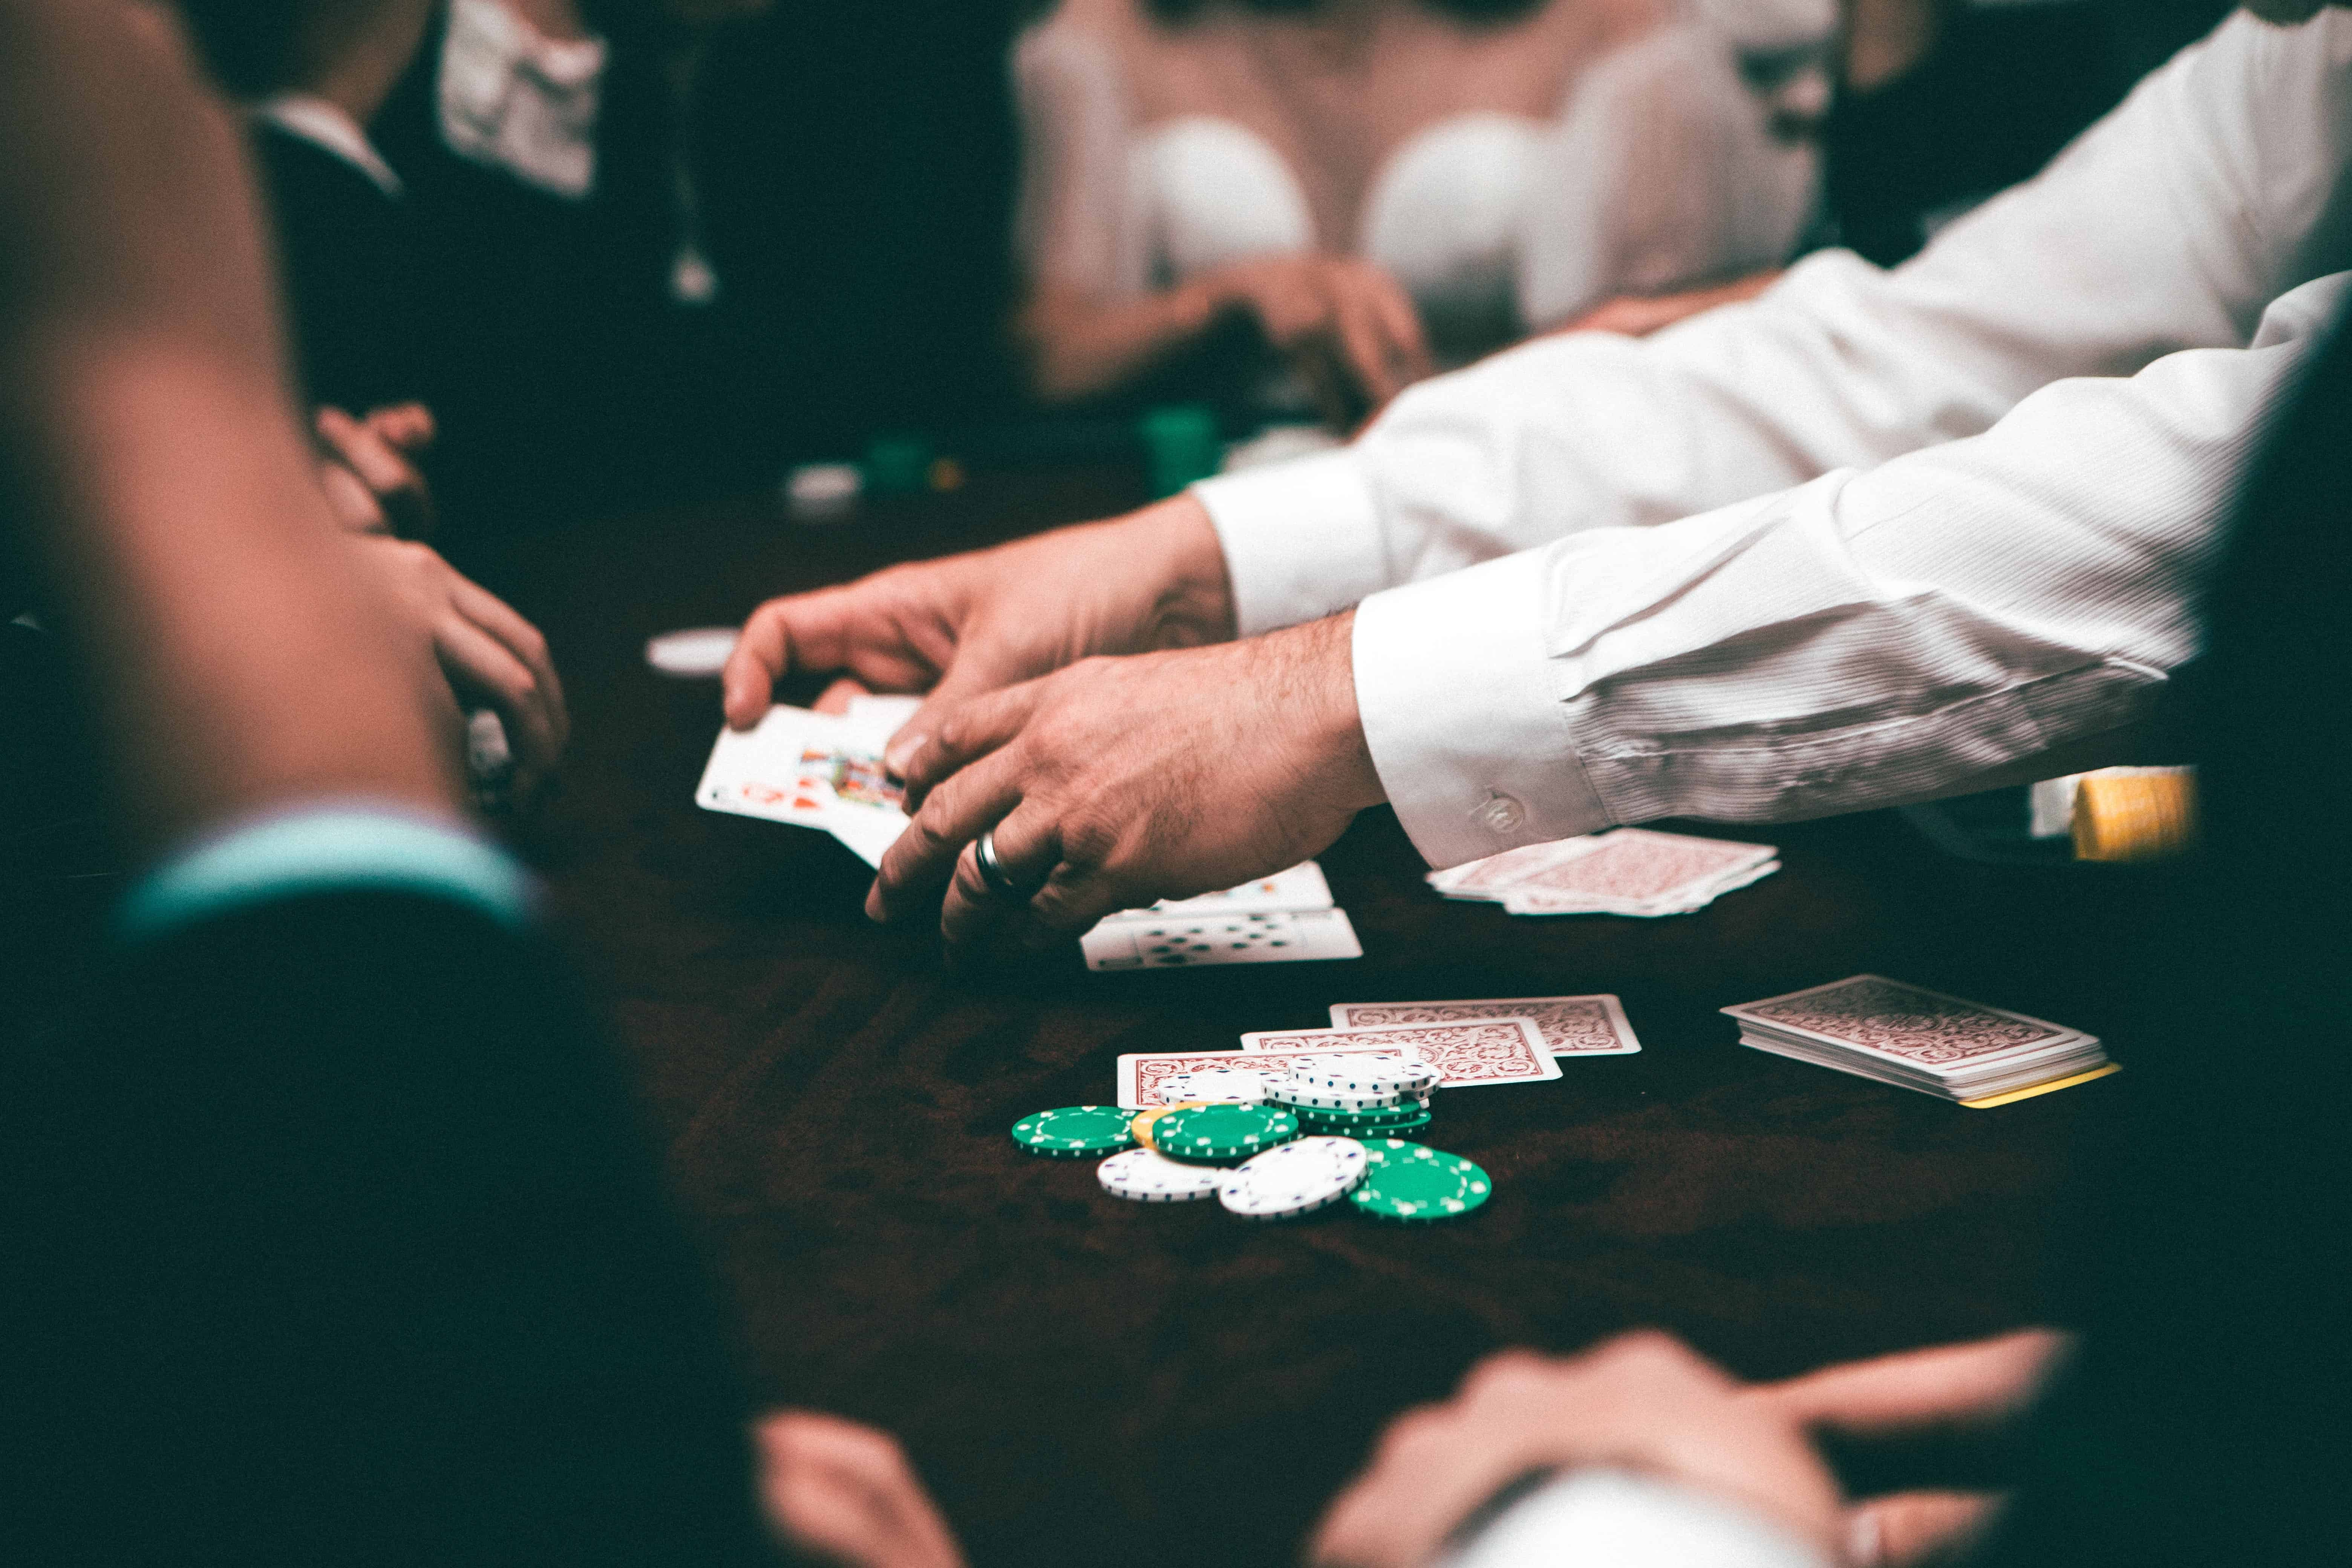 male hands holding casino cards